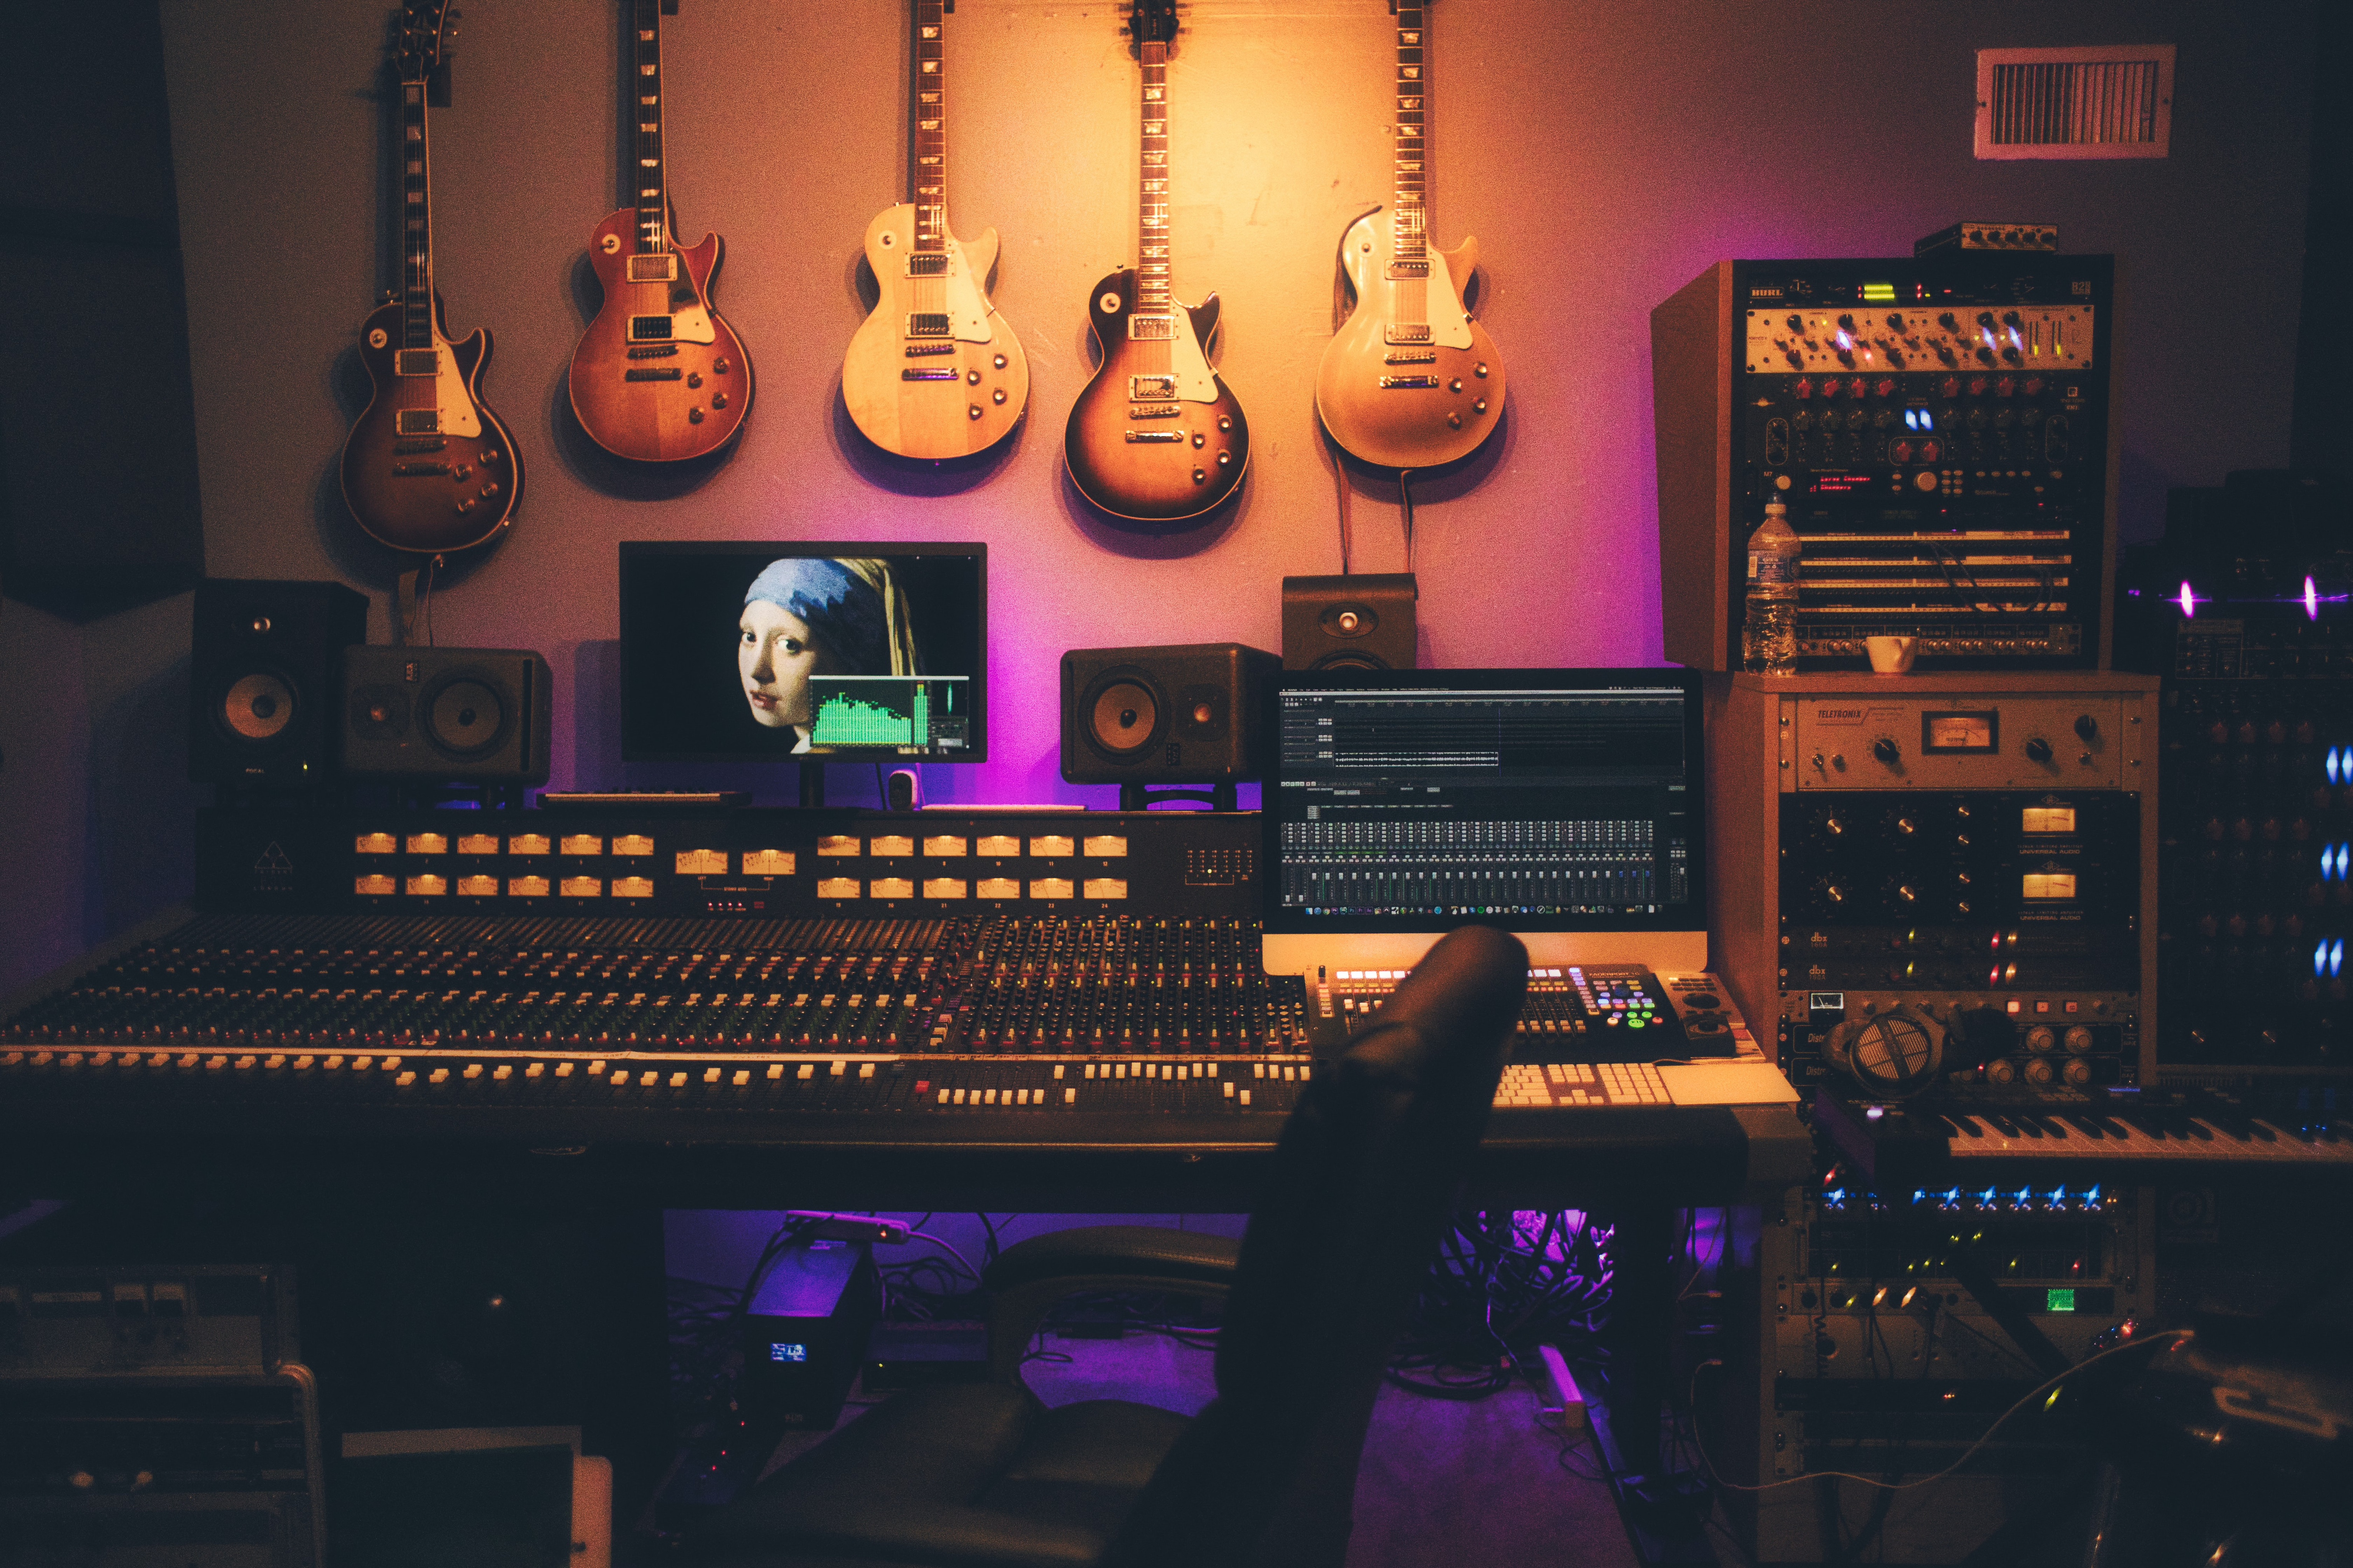 Production, Mixing & Mastering